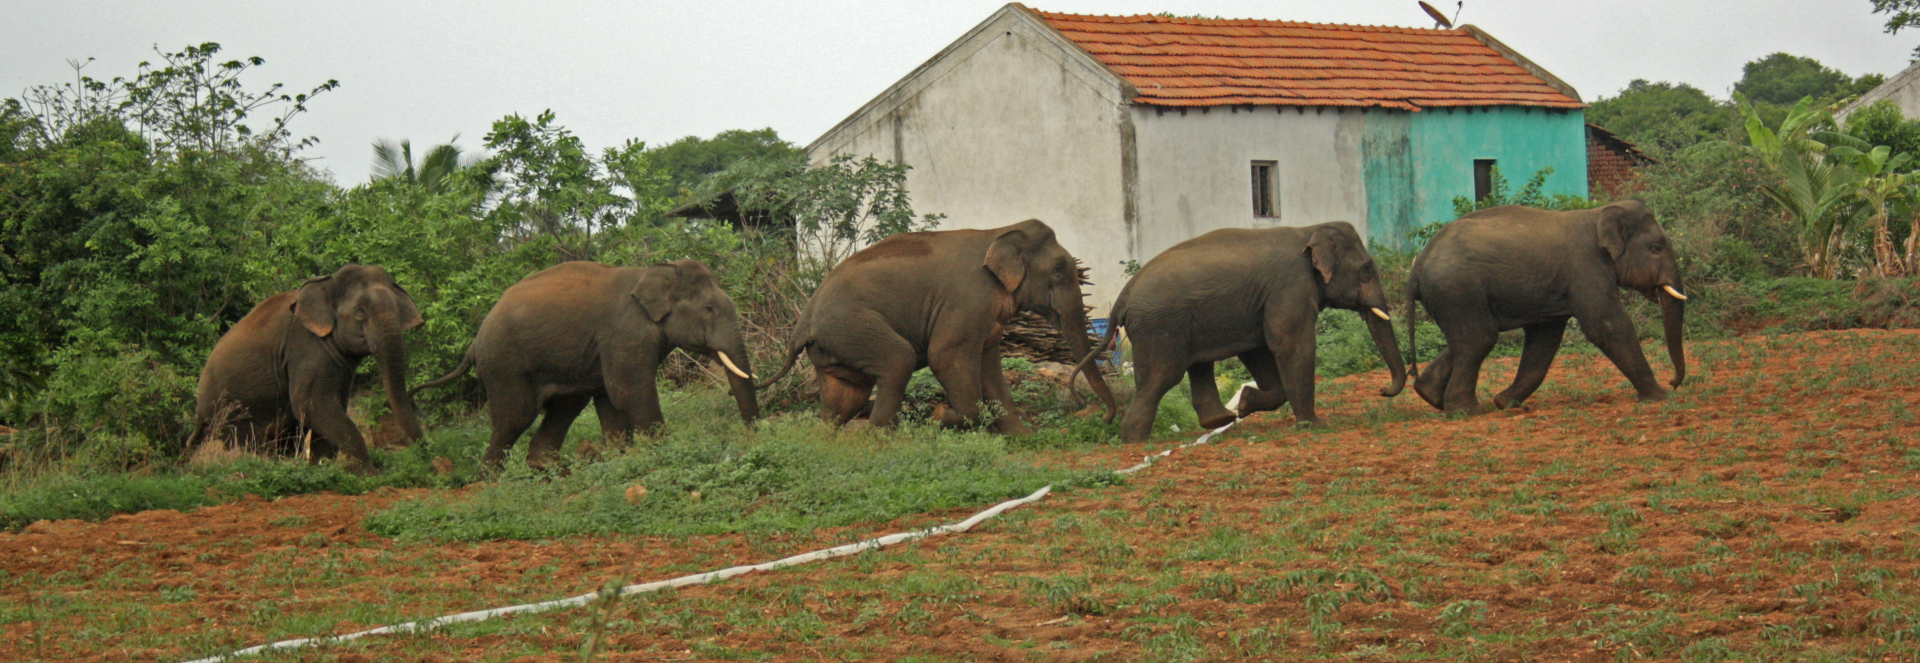 The research team set up camera traps that filmed herds of all-male elephants who stuck together. This was mostly seen in habitats encroached on by agricultural production or human intervention. Here, an all-male group walks through a human settlement. Photo: FEP/Vinod Kumar Moses </br> Cover Photo: Like human beings, elephants have complex social lives. As females mature, they stay on with the herd they were born into. Young males, it is believed, are chased away, and often lead solitary lives. They will often fight over females during the breeding season. Photo: Arindam Bhattacharya